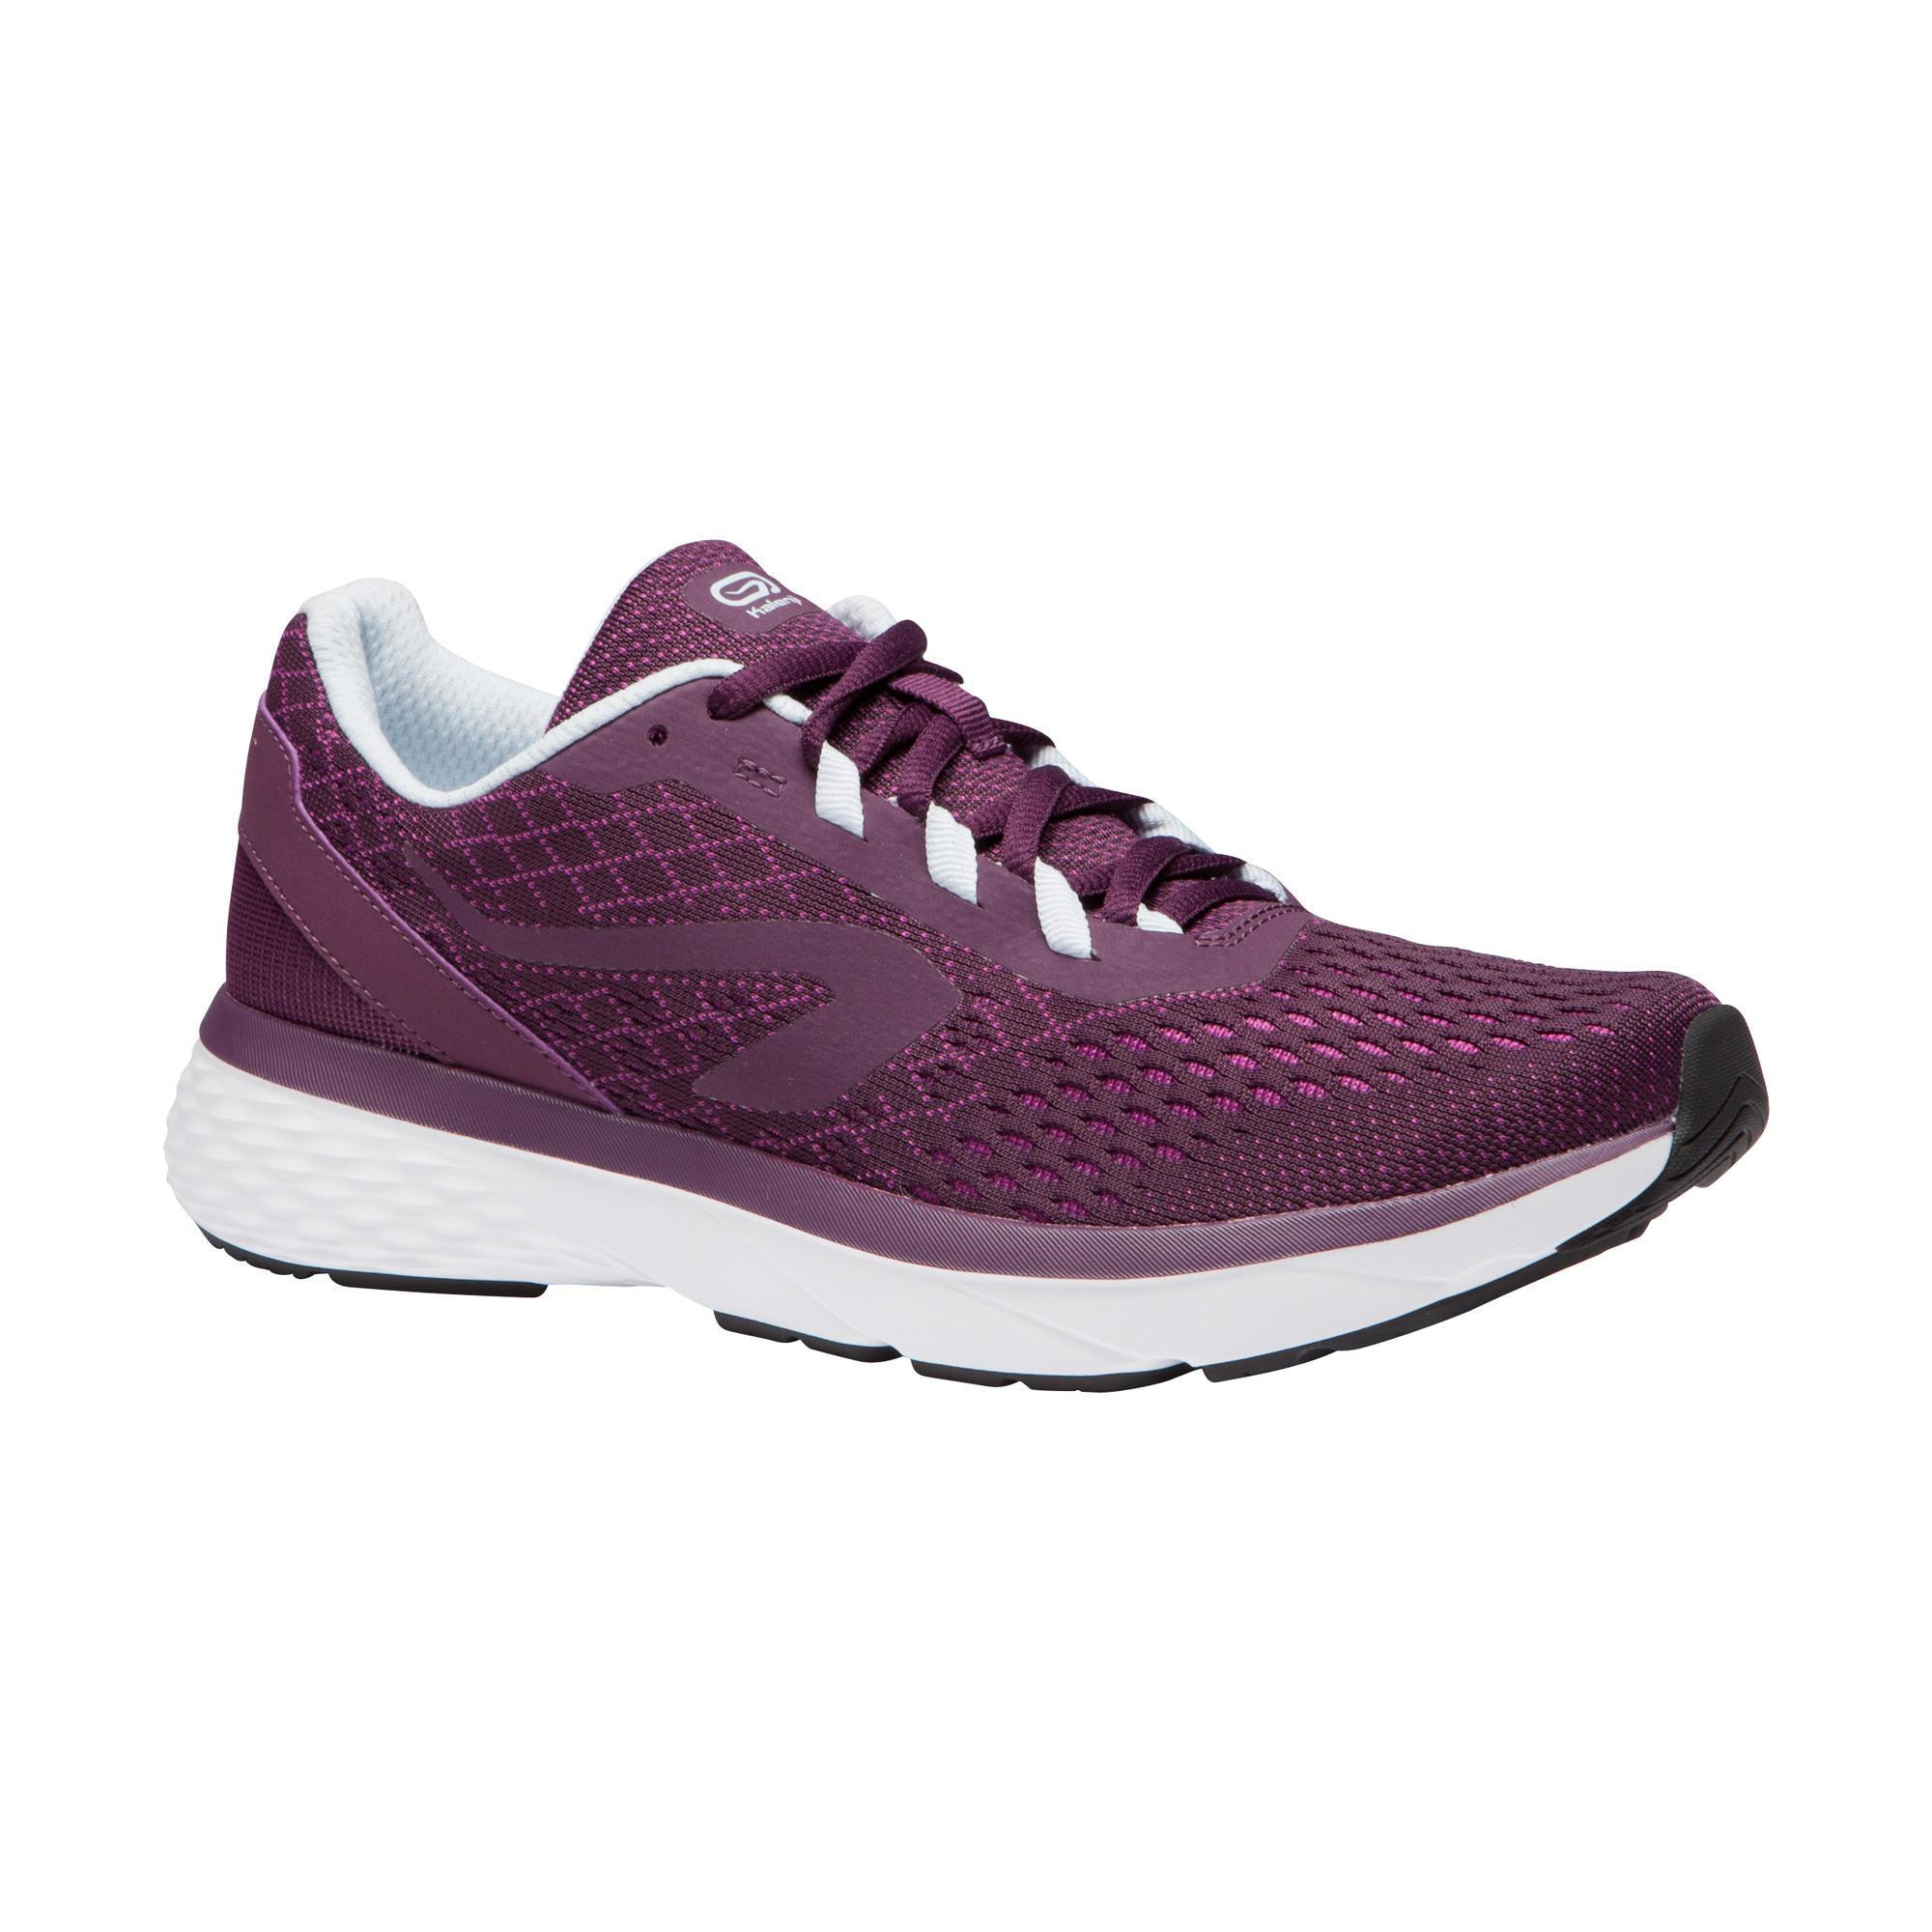 Laufschuhe Run Support Damen bordeaux